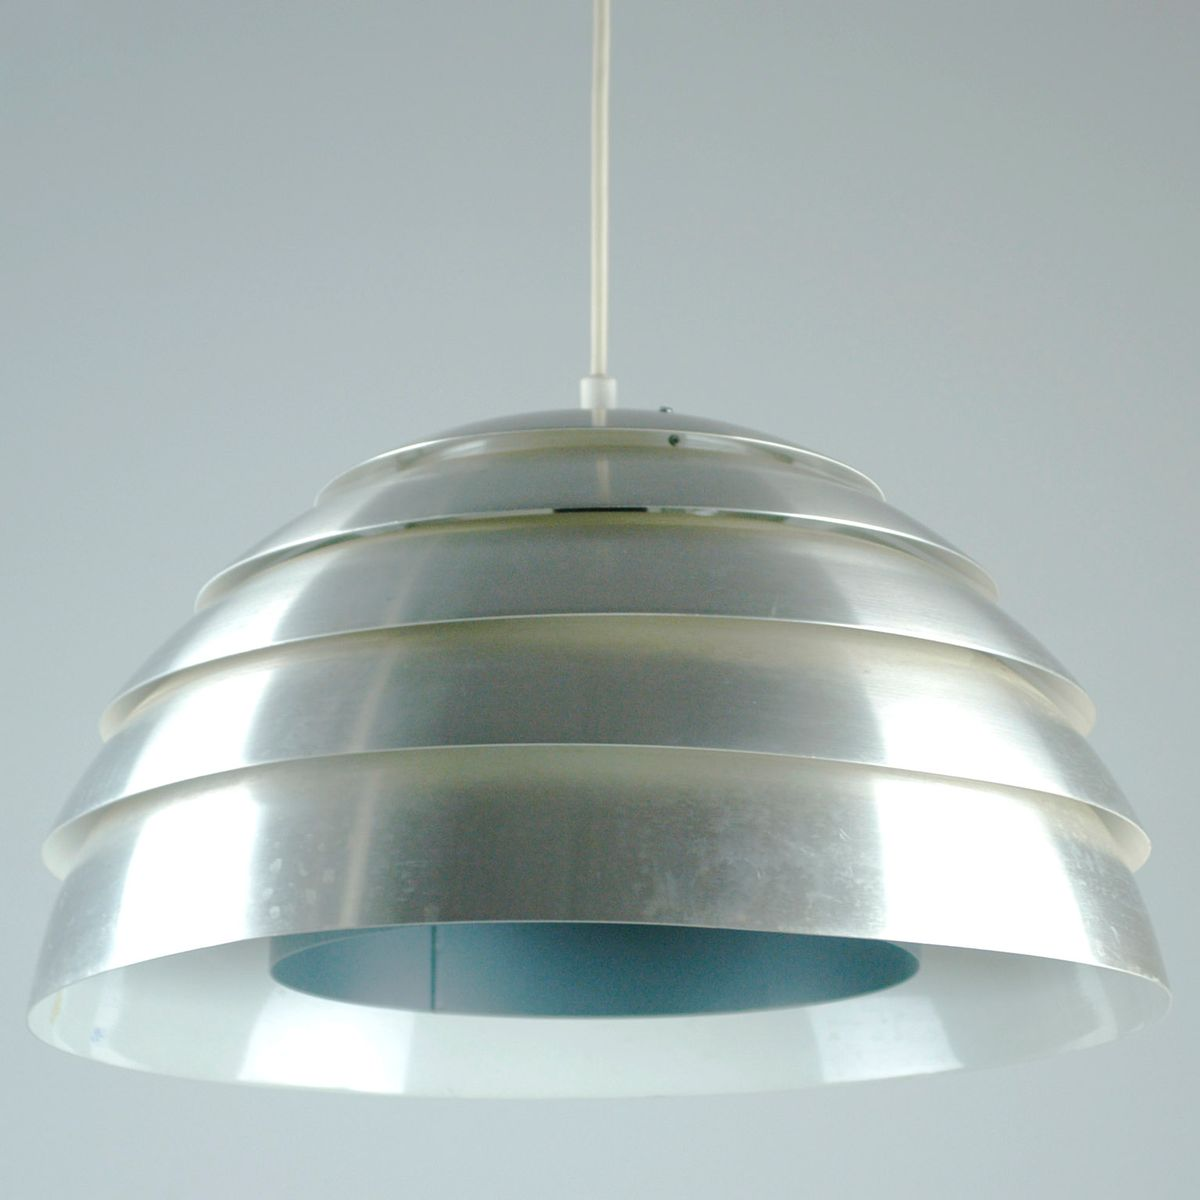 industville image at pewter inch brooklyn lights in ceiling and pendant lighting dome copper